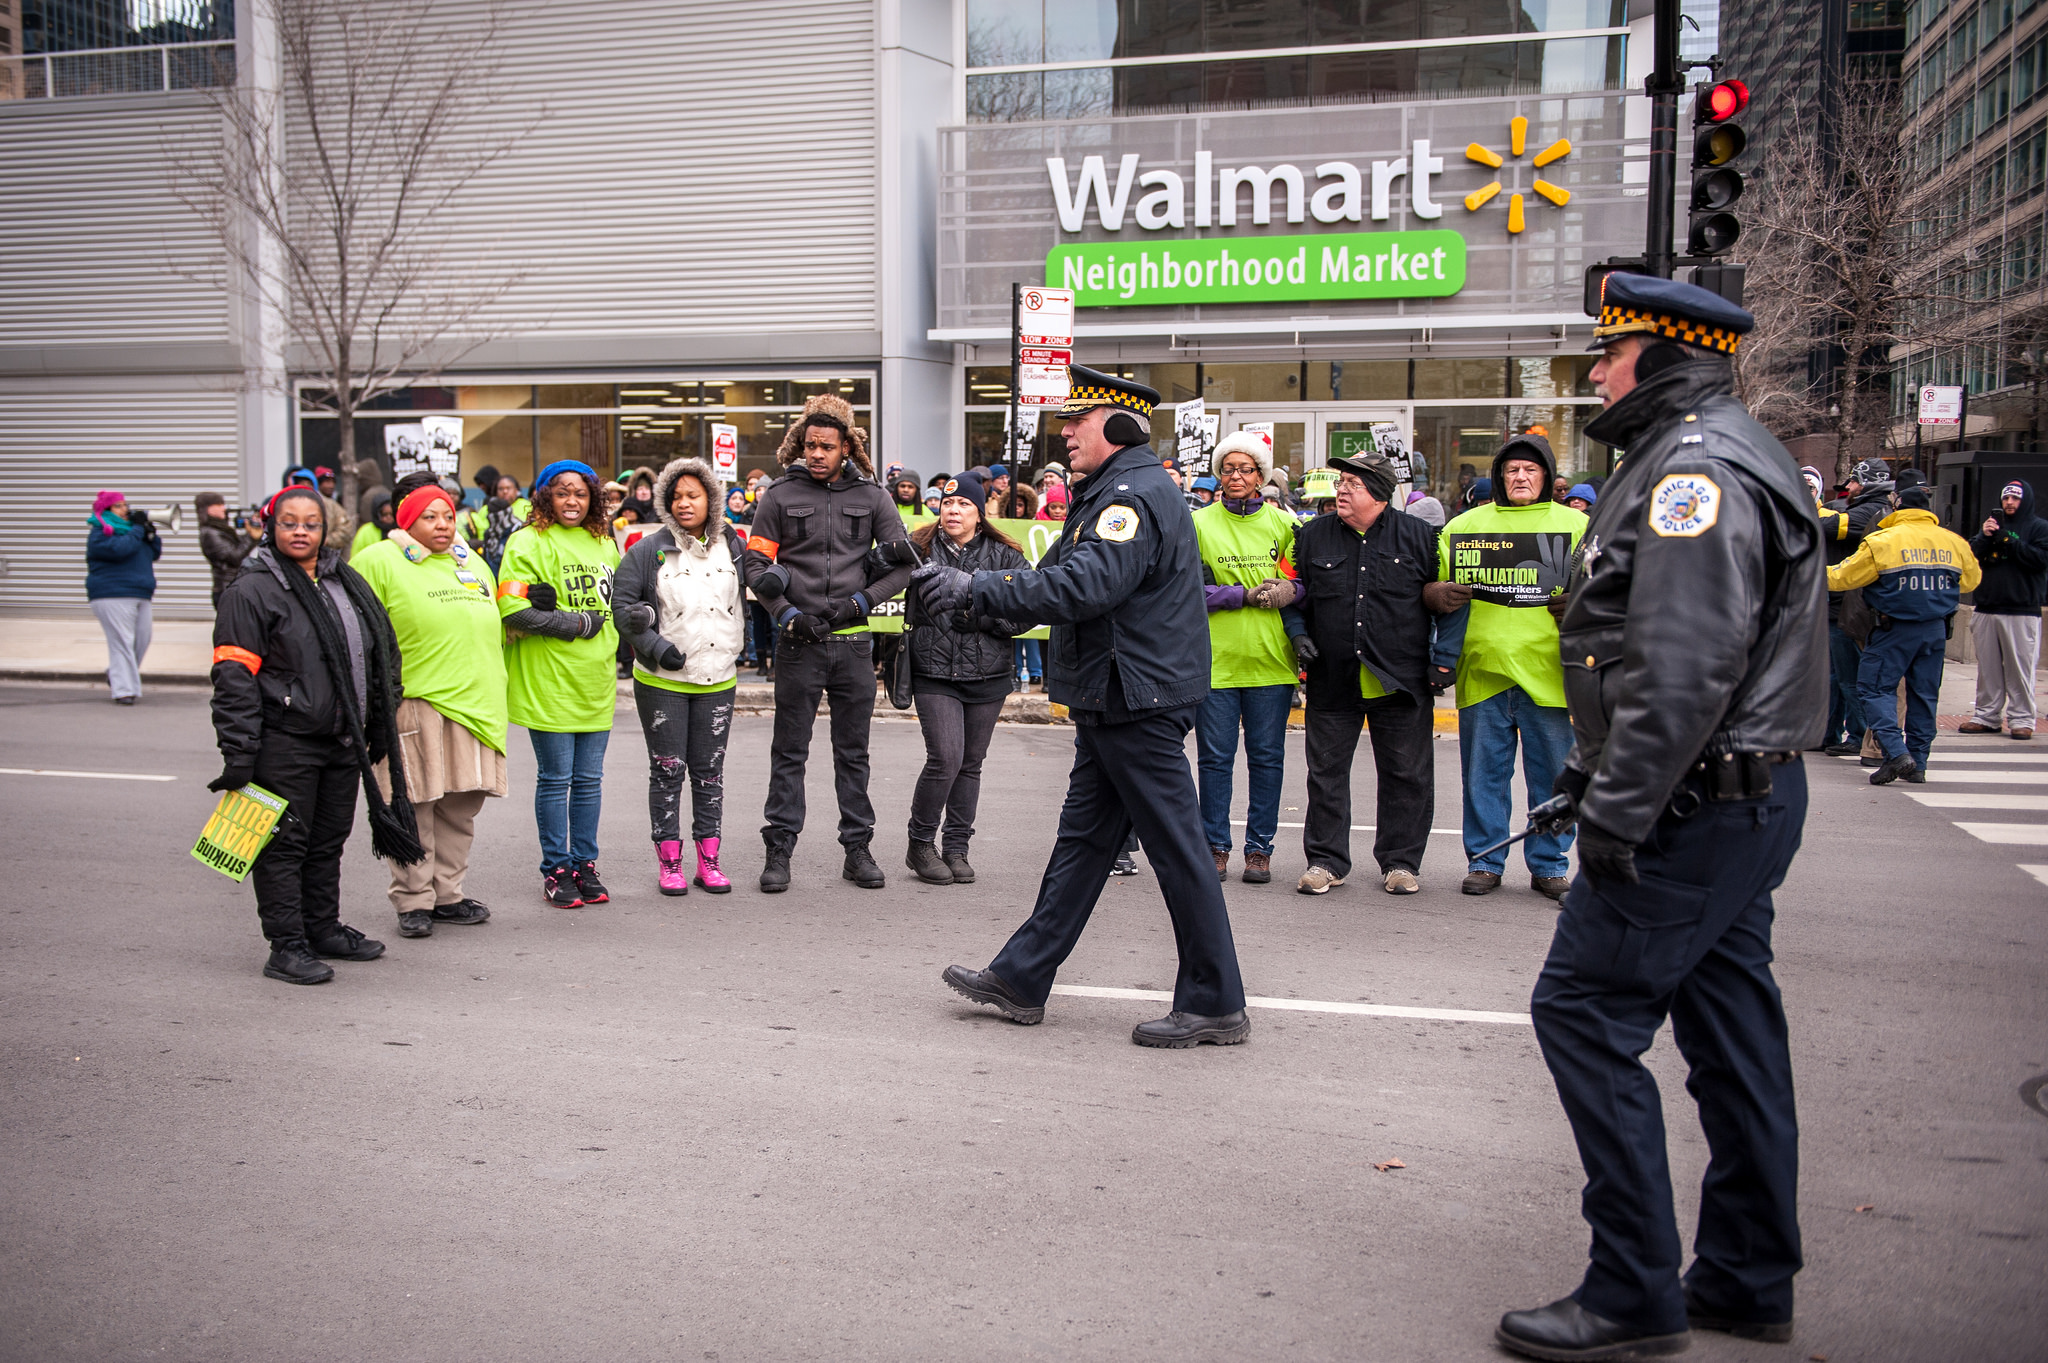 The Shocking, Unmatched Pains That Walmart Took to Avoid Unions